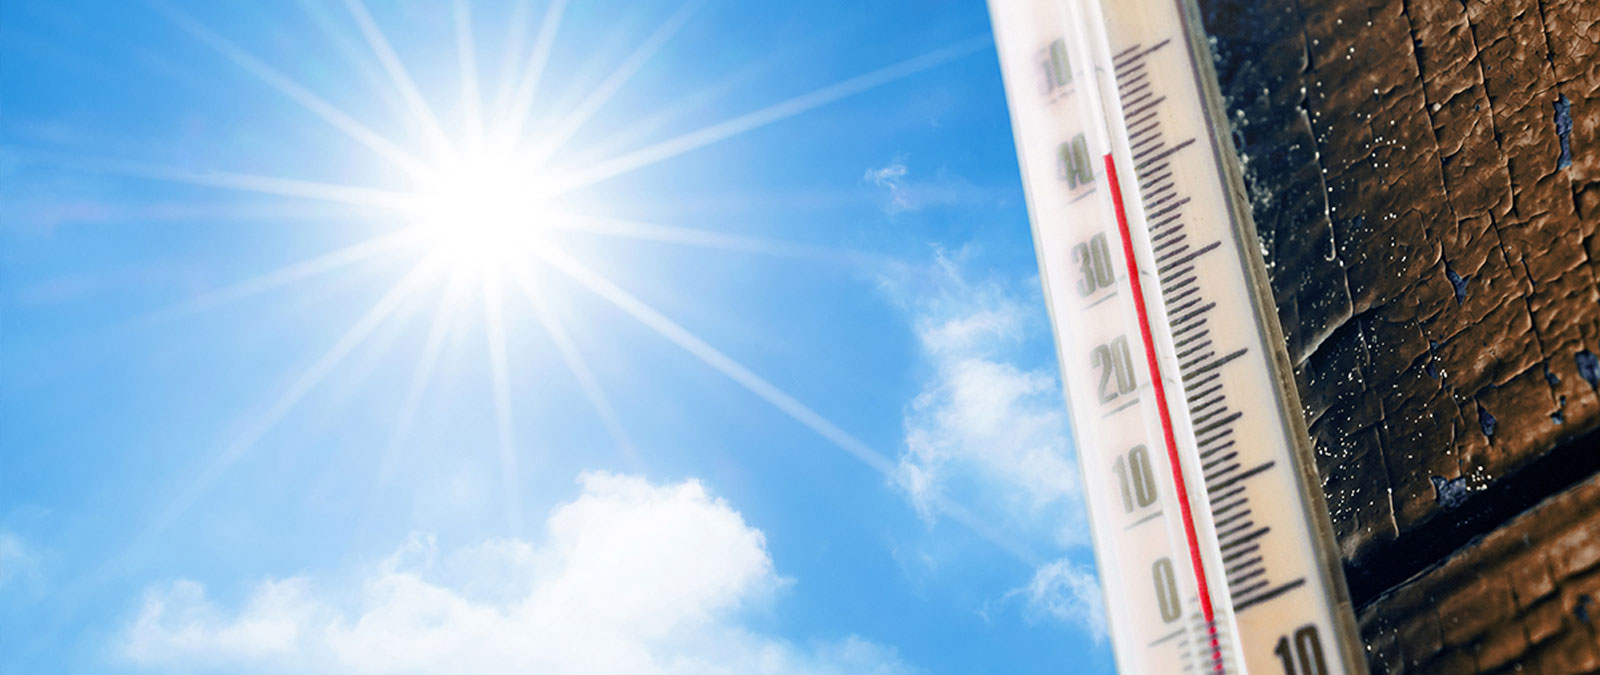 Dealing with the Heat: Home Improvements to Help Keep Your Home Cool